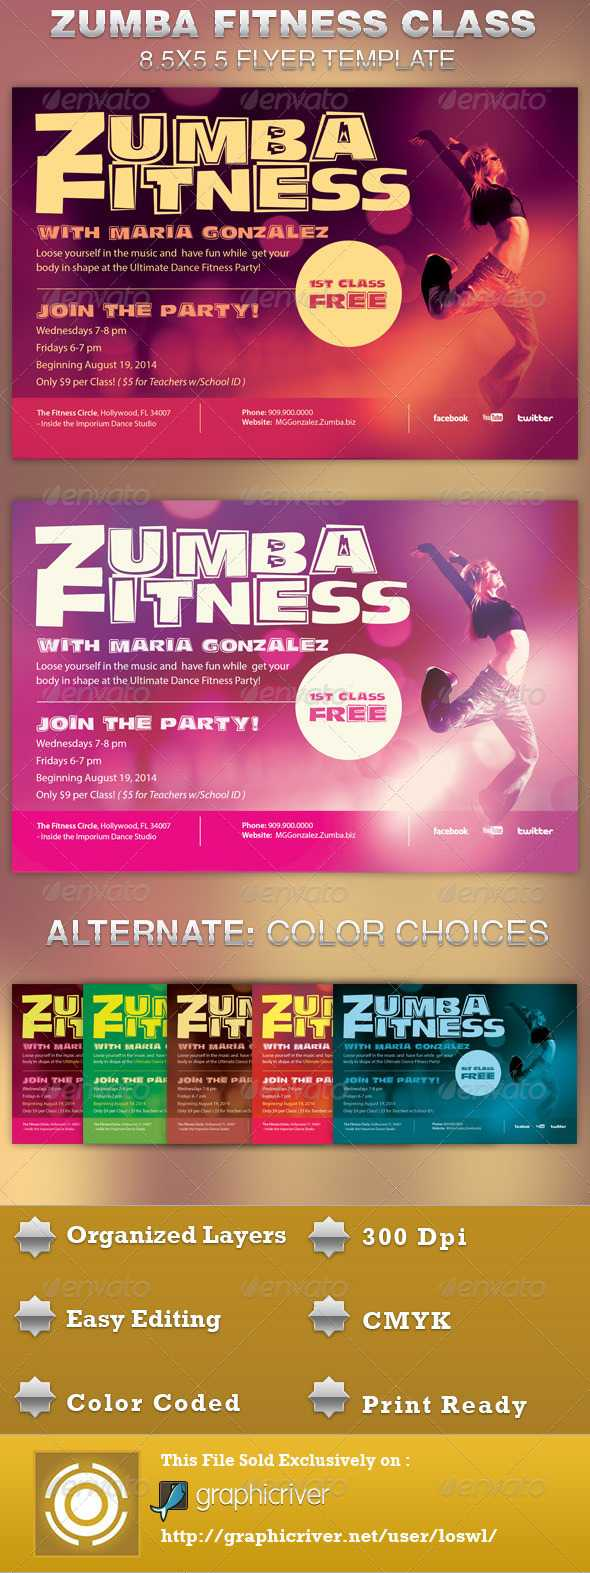 Zumba Flyer Graphics, Designs & Templates From Graphicriver Within Free Zumba Flyer Templates